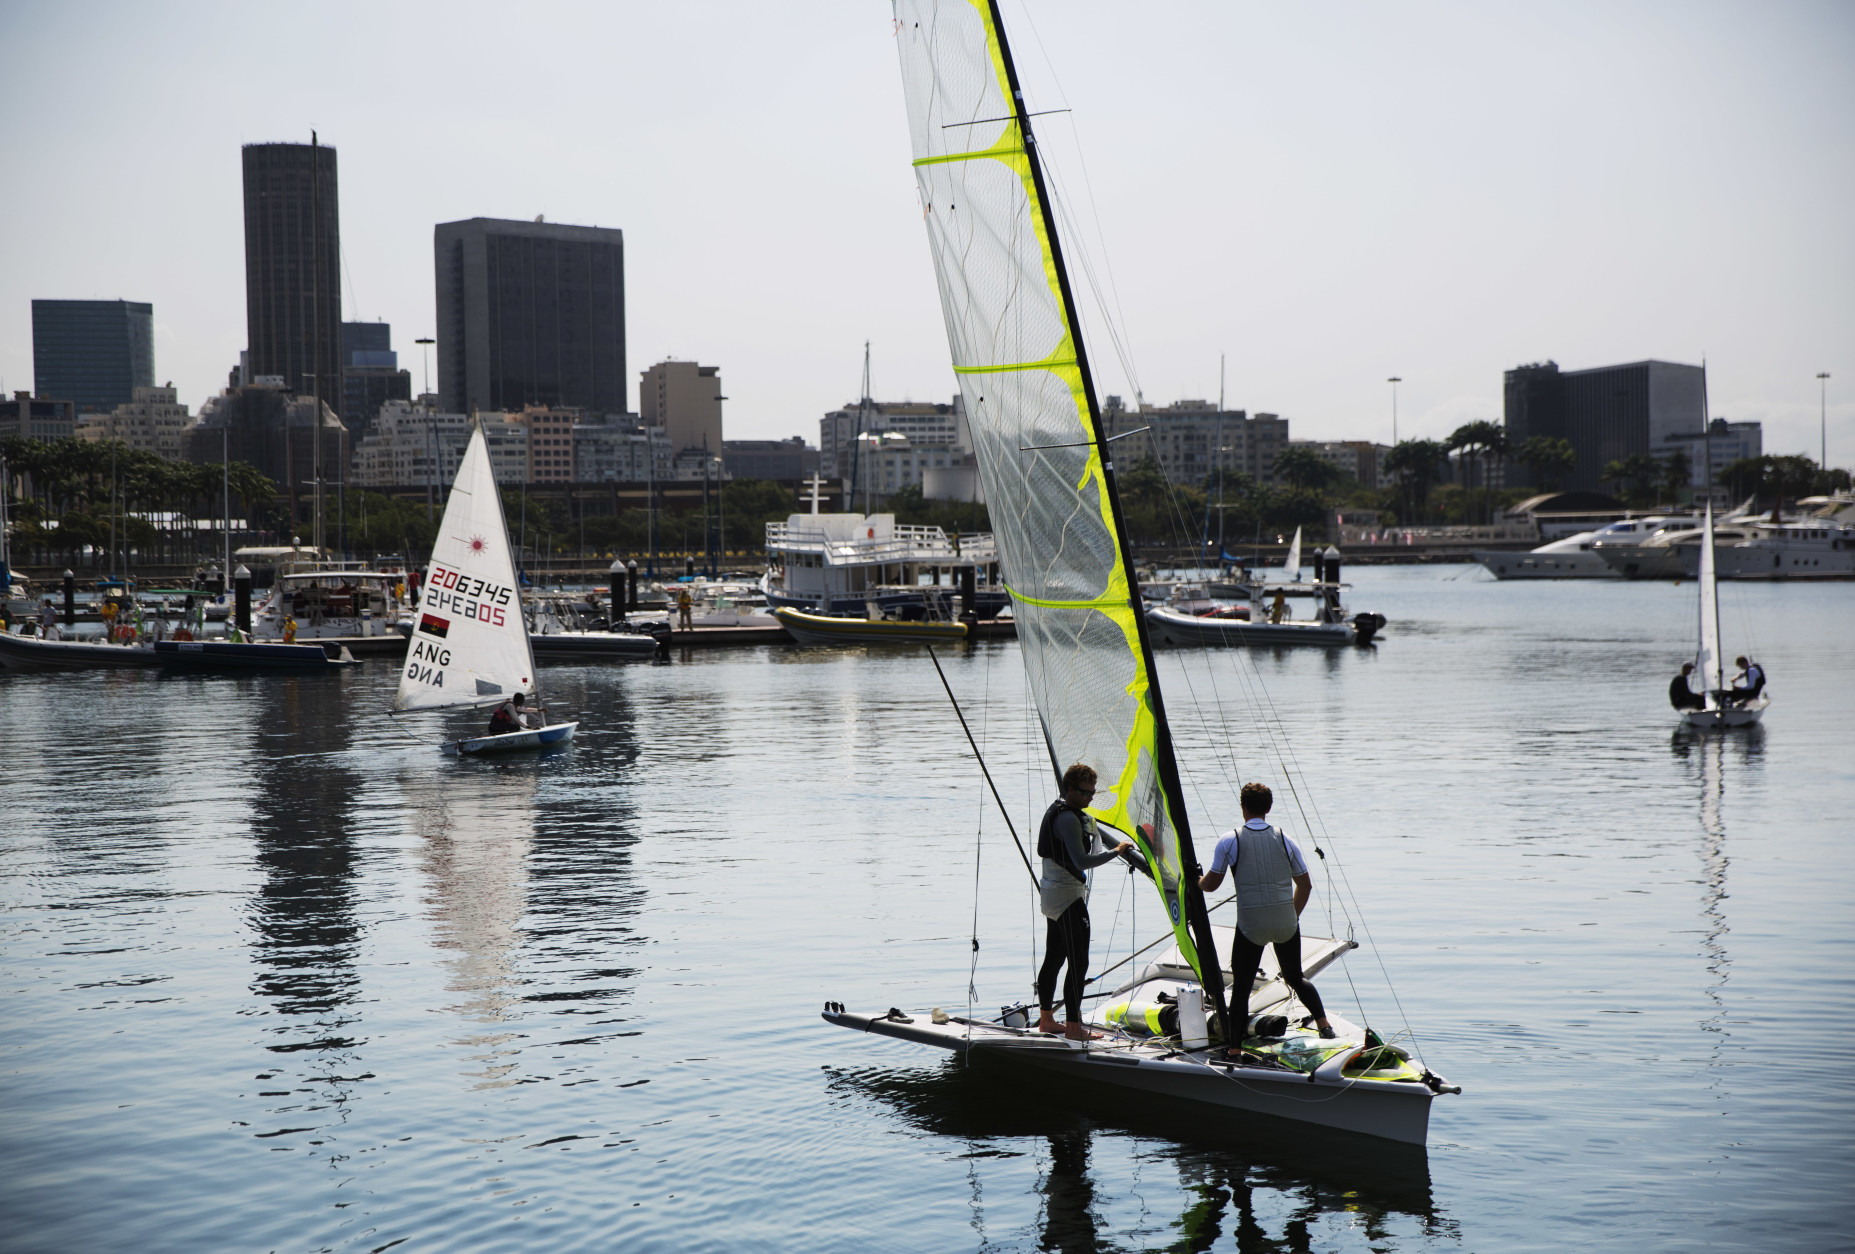 Thomas Barrows, left, and Joe Morris, of the United States men's sailing team, set out for a practice session ahead of the upcoming 2016 Summer Olympics in Rio de Janeiro, Brazil, Thursday, Aug. 4, 2016. (AP Photo/David Goldman)